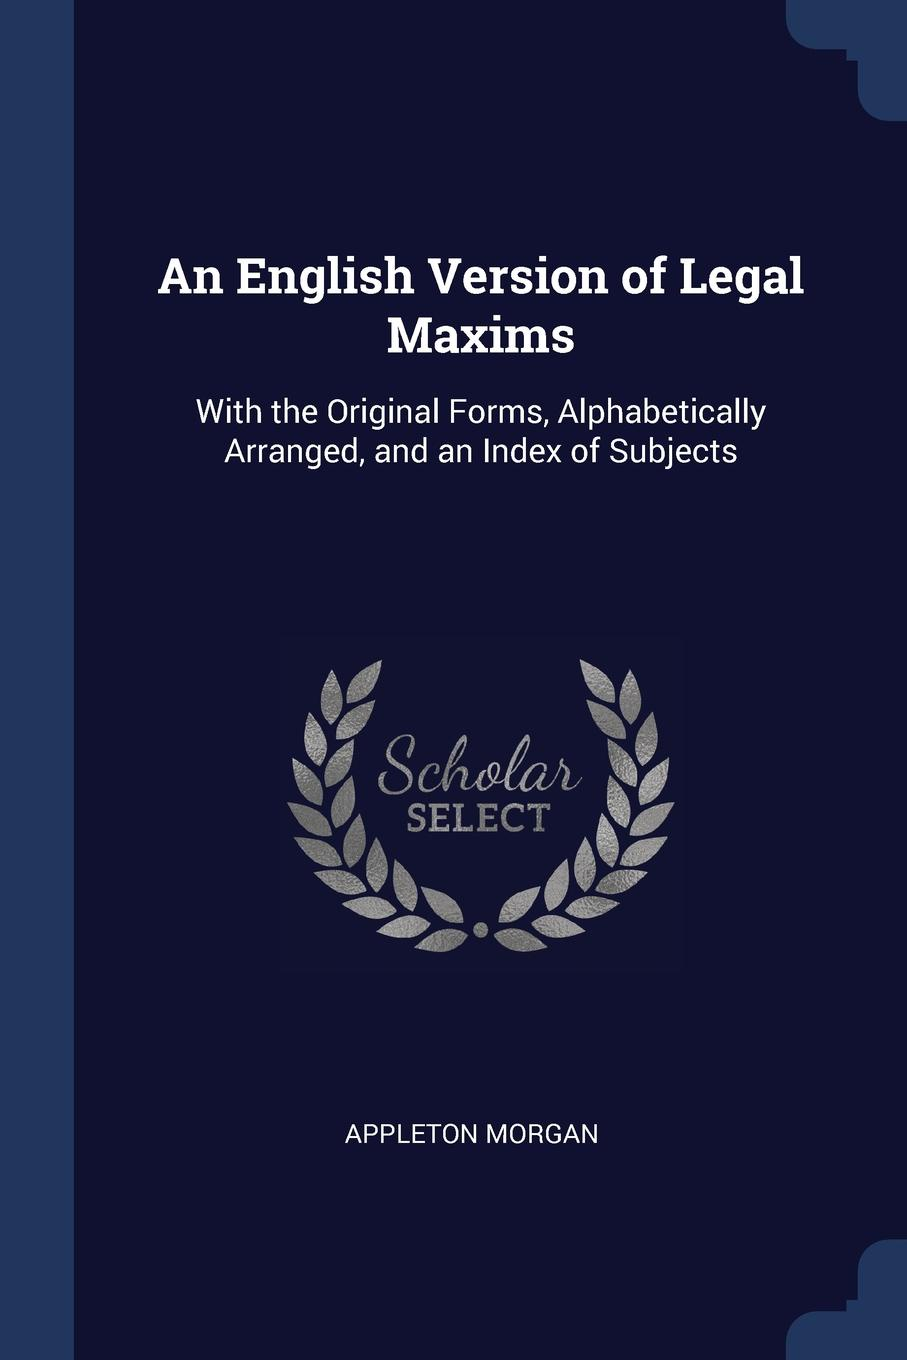 An English Version of Legal Maxims. With the Original Forms, Alphabetically Arranged, and an Index of Subjects